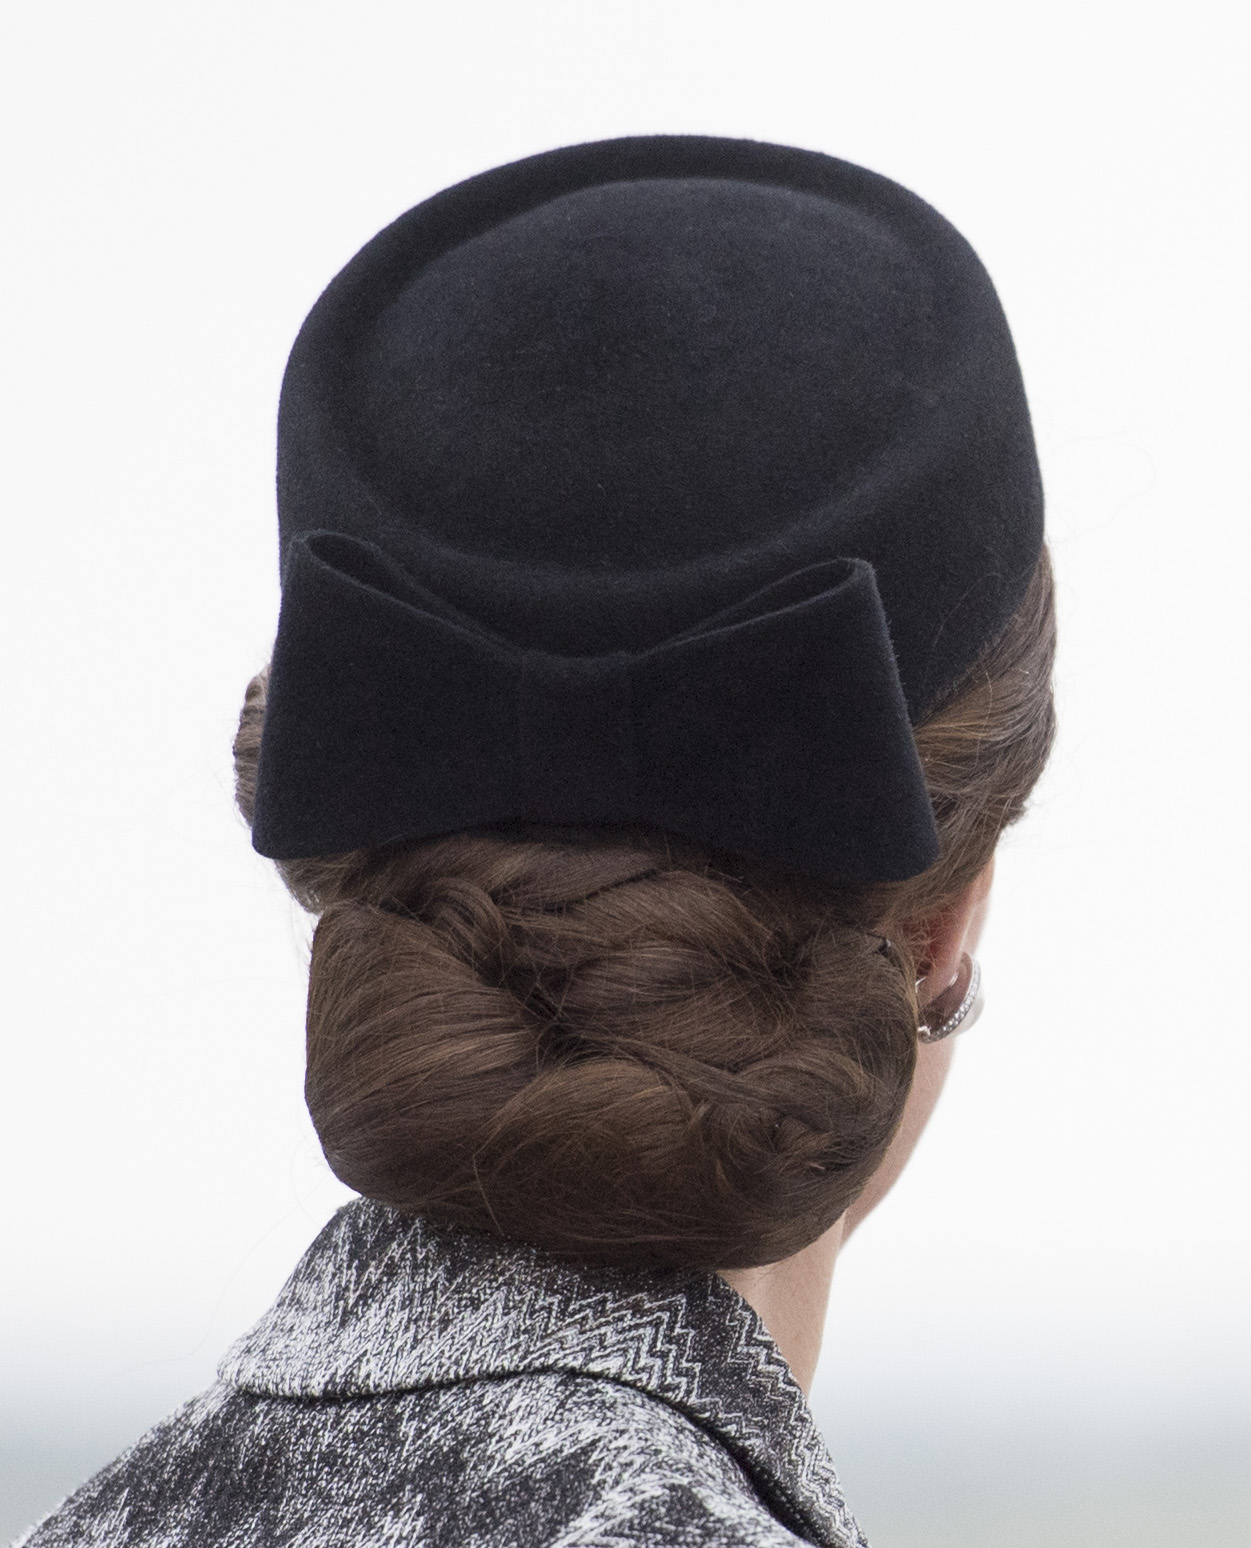 Kate Middleton wears hairnets to keep her updos in place